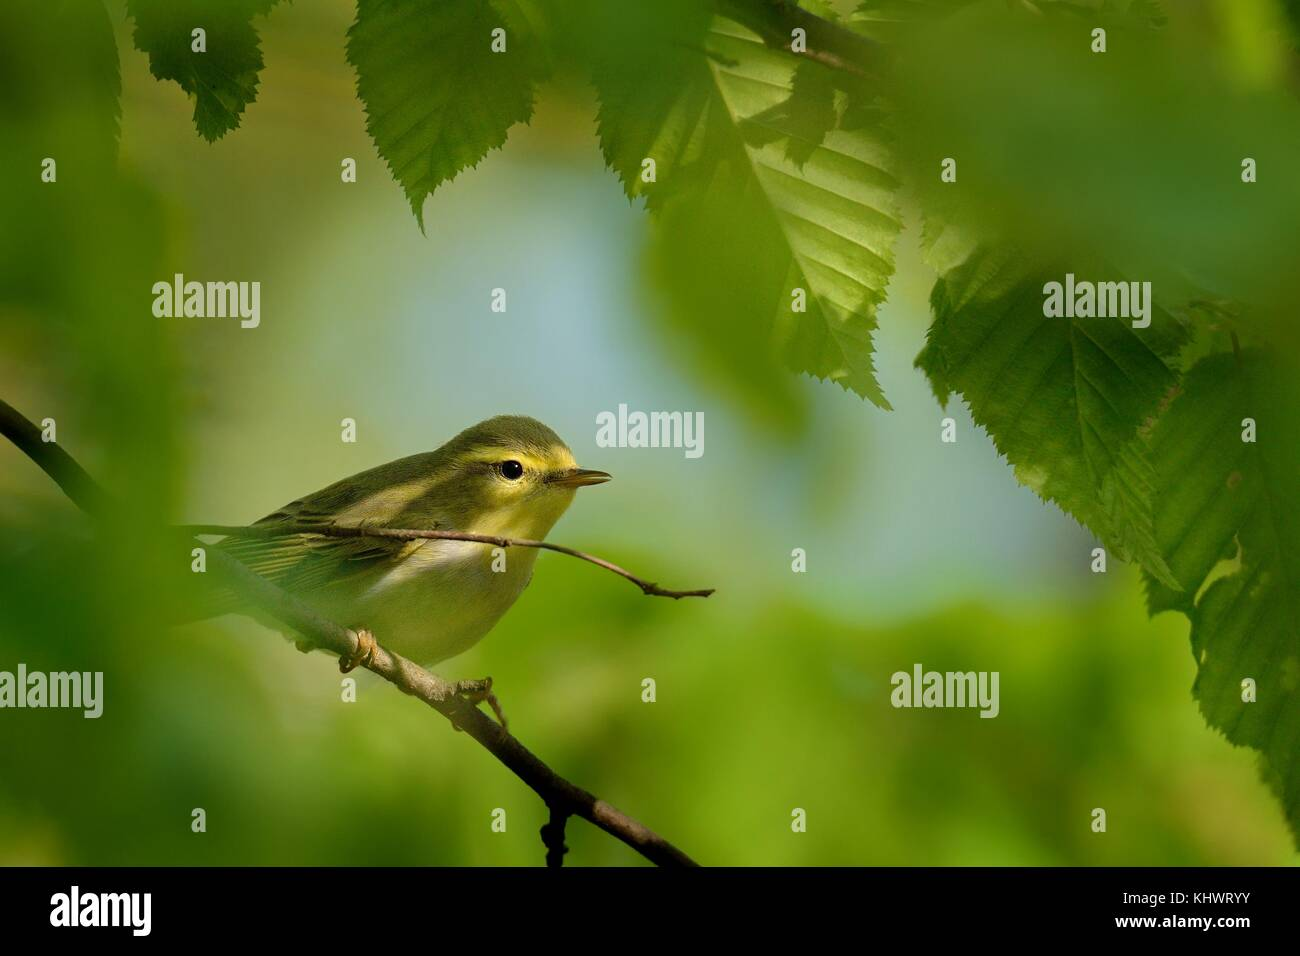 Wood Warbler - Phylloscopus sibilatrix is perching on the branch. Small forest bird sitting on the branch with green - Stock Image